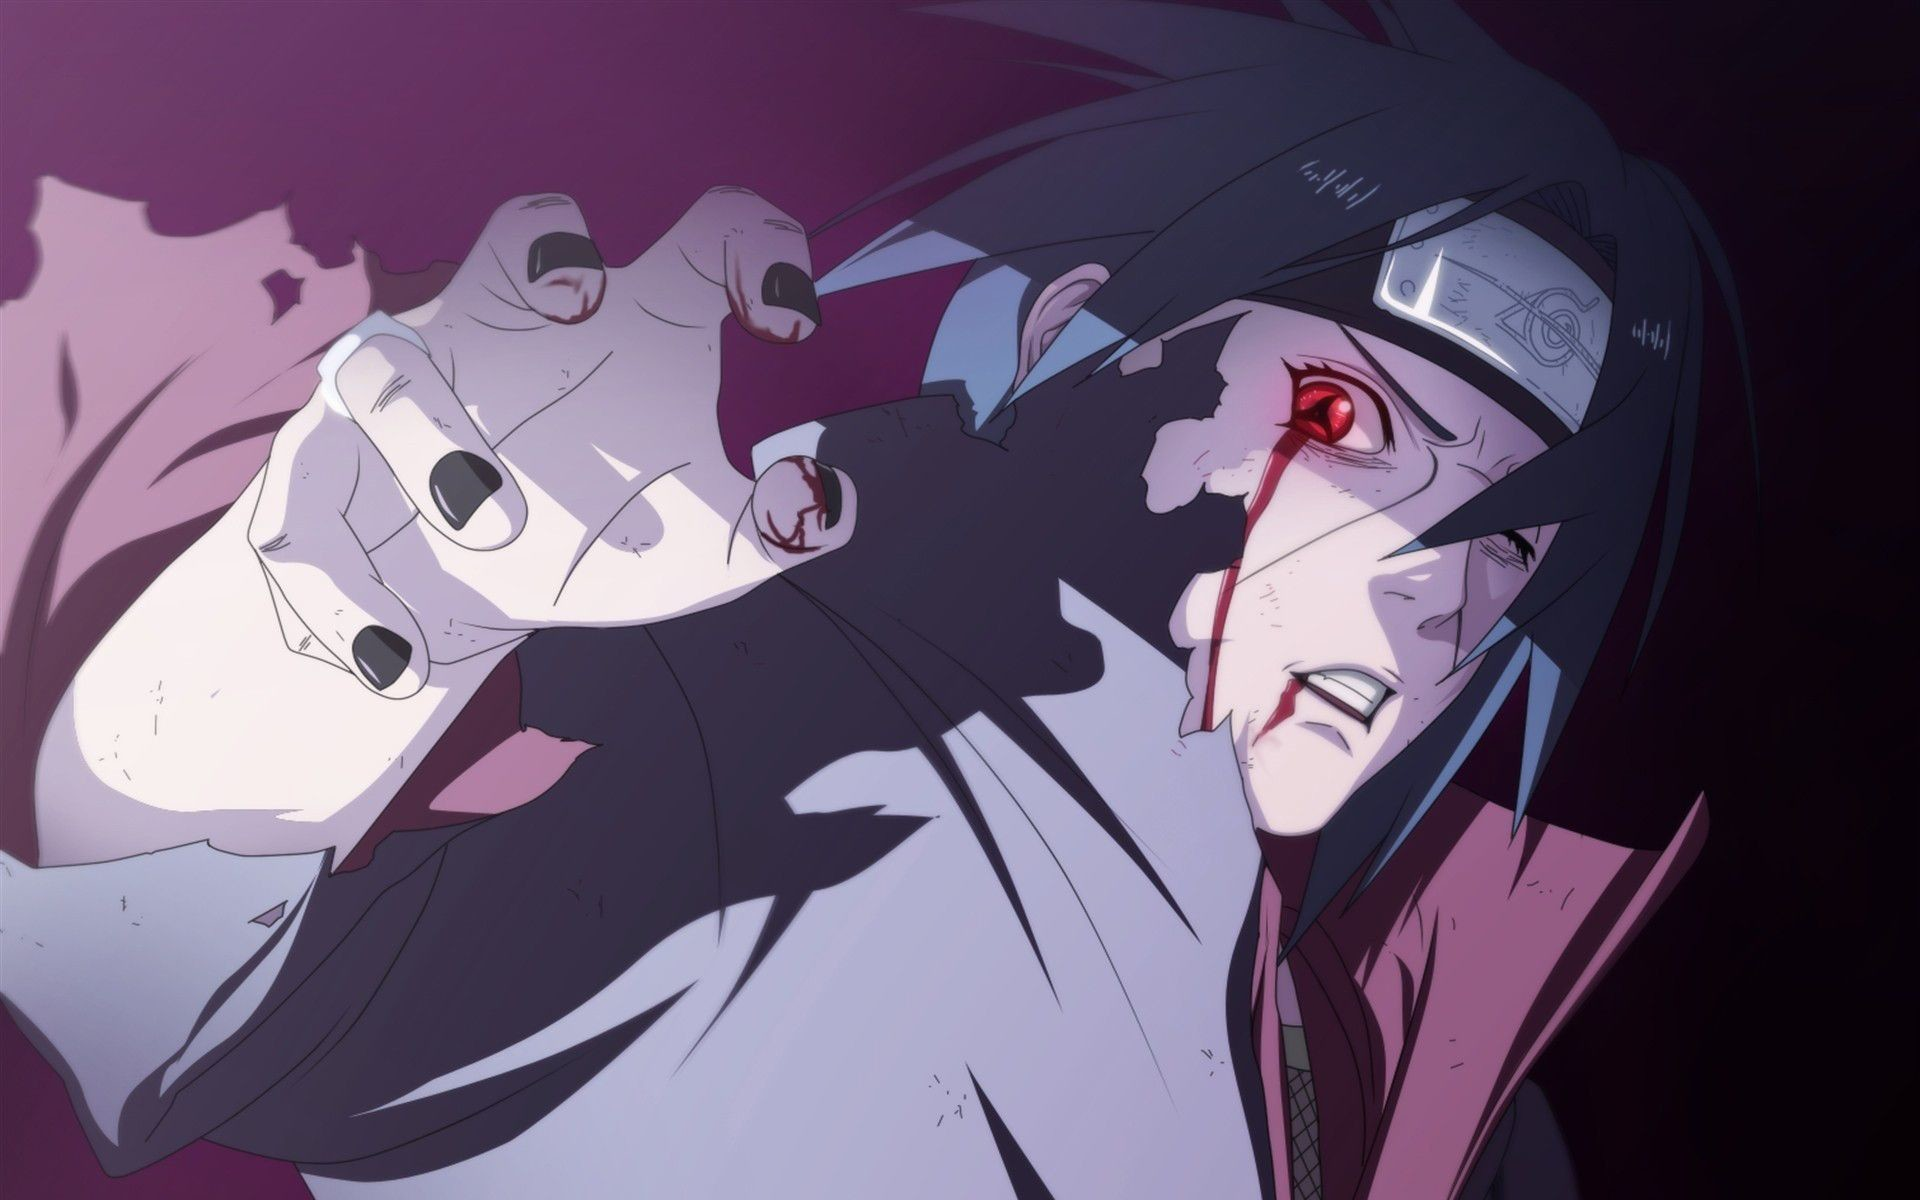 Itachi Uchiha Susanoo Wallpaper Hd: Itachi Amaterasu Wallpaper (47+ Images